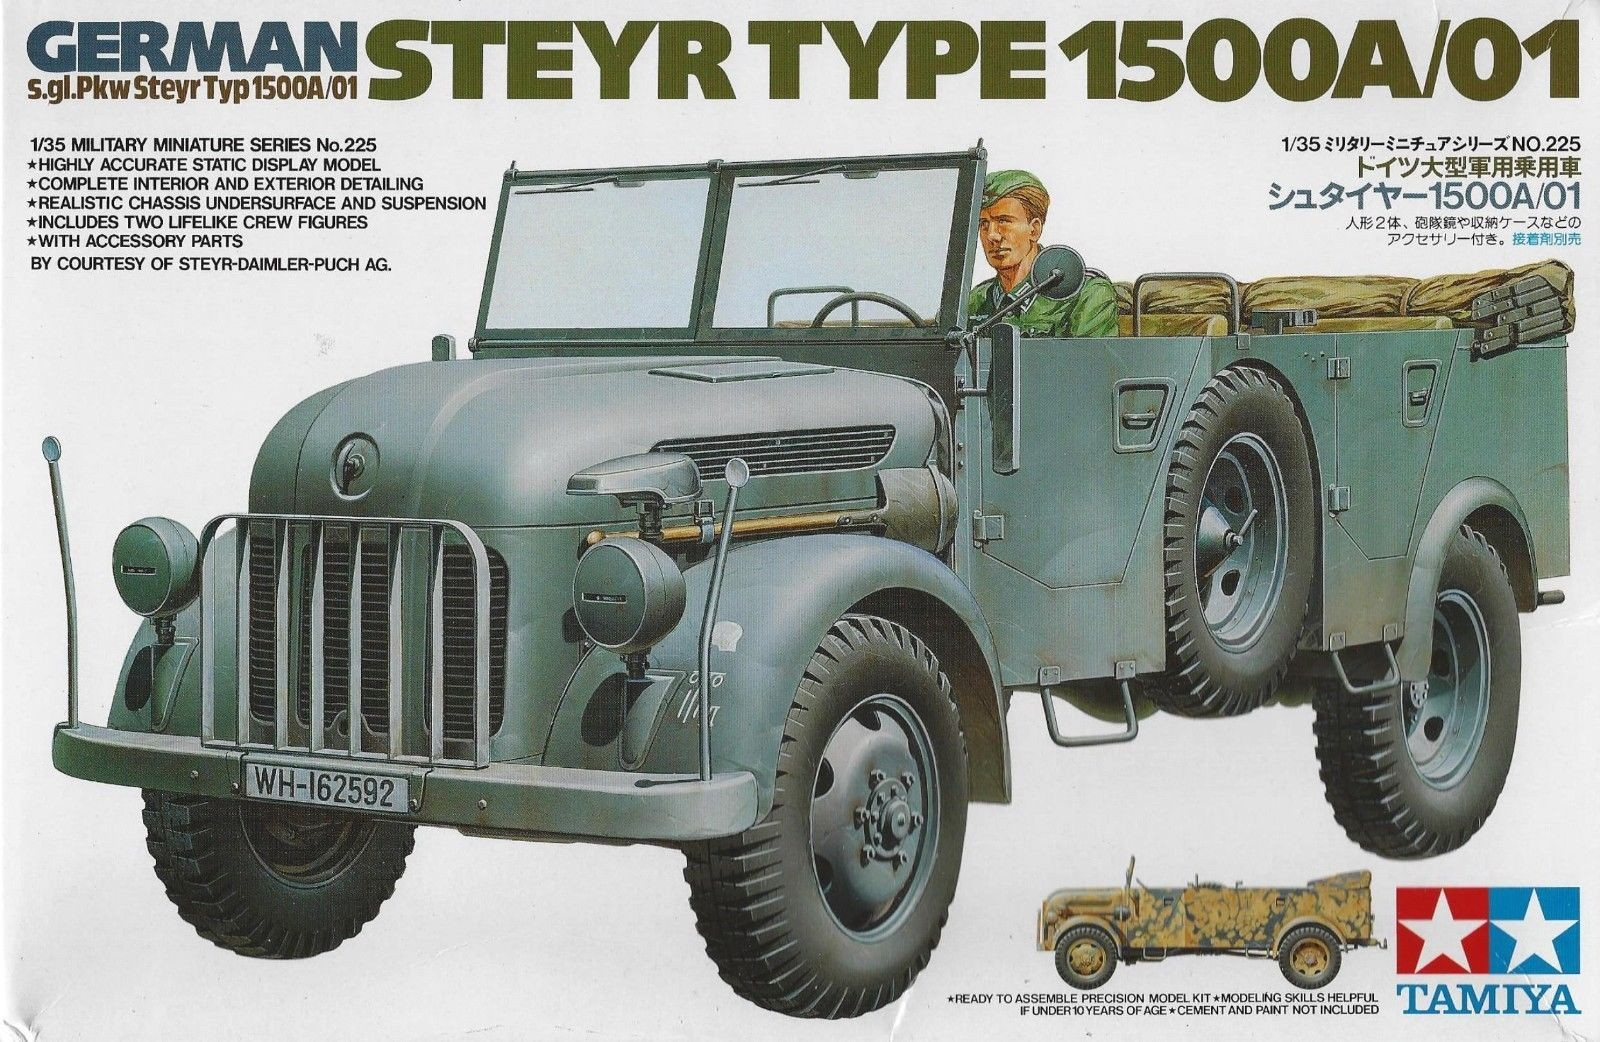 German Steyr 1500A/01 - Tamiya 35225 - plastic model kit - 1/35 scale